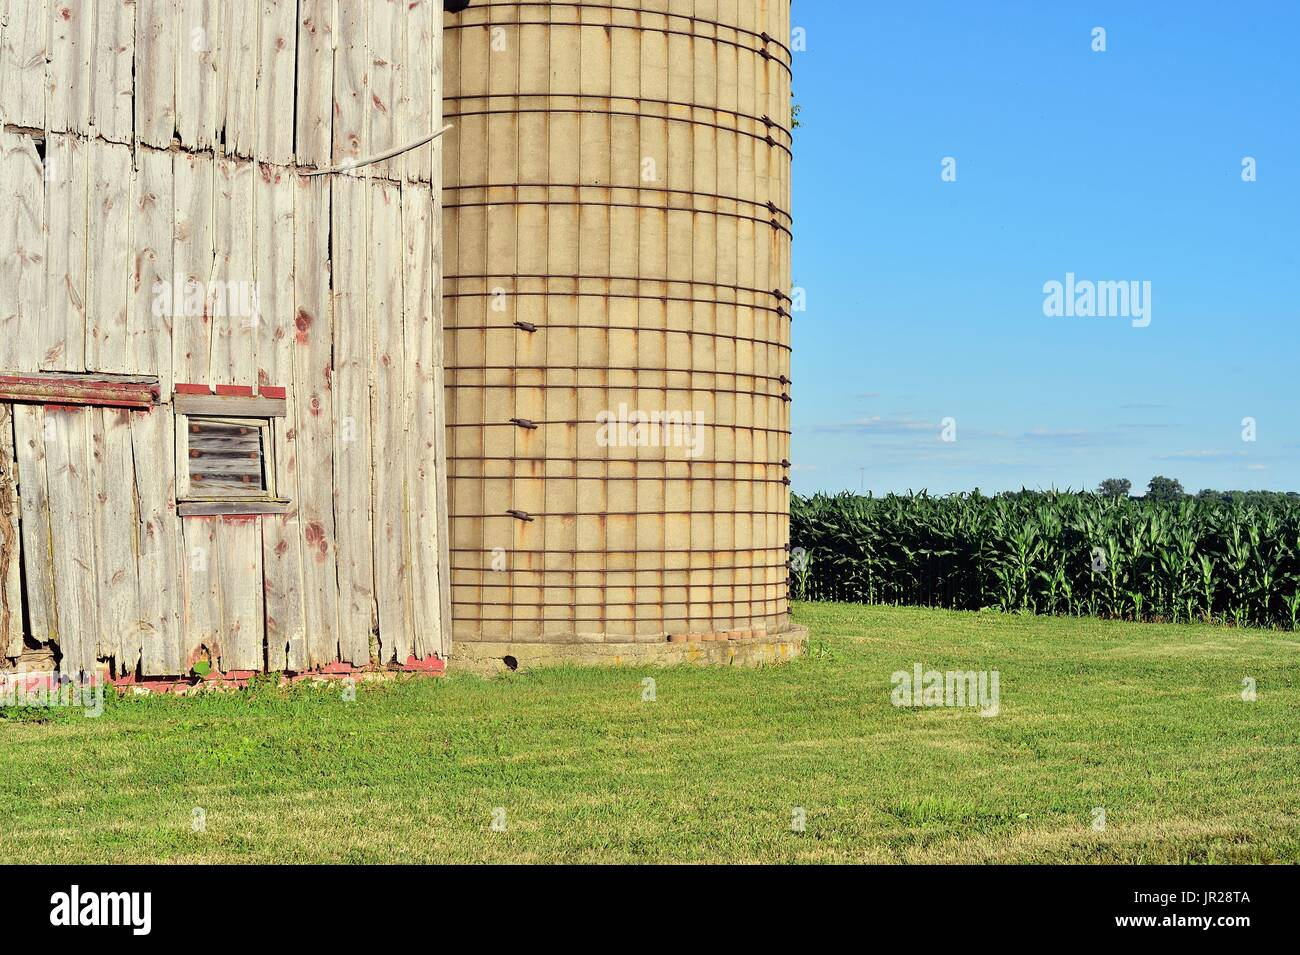 Burlington, Illinois, USA. A venerable, weathered barn and silo silently stand guard over a maturing corn crop. - Stock Image